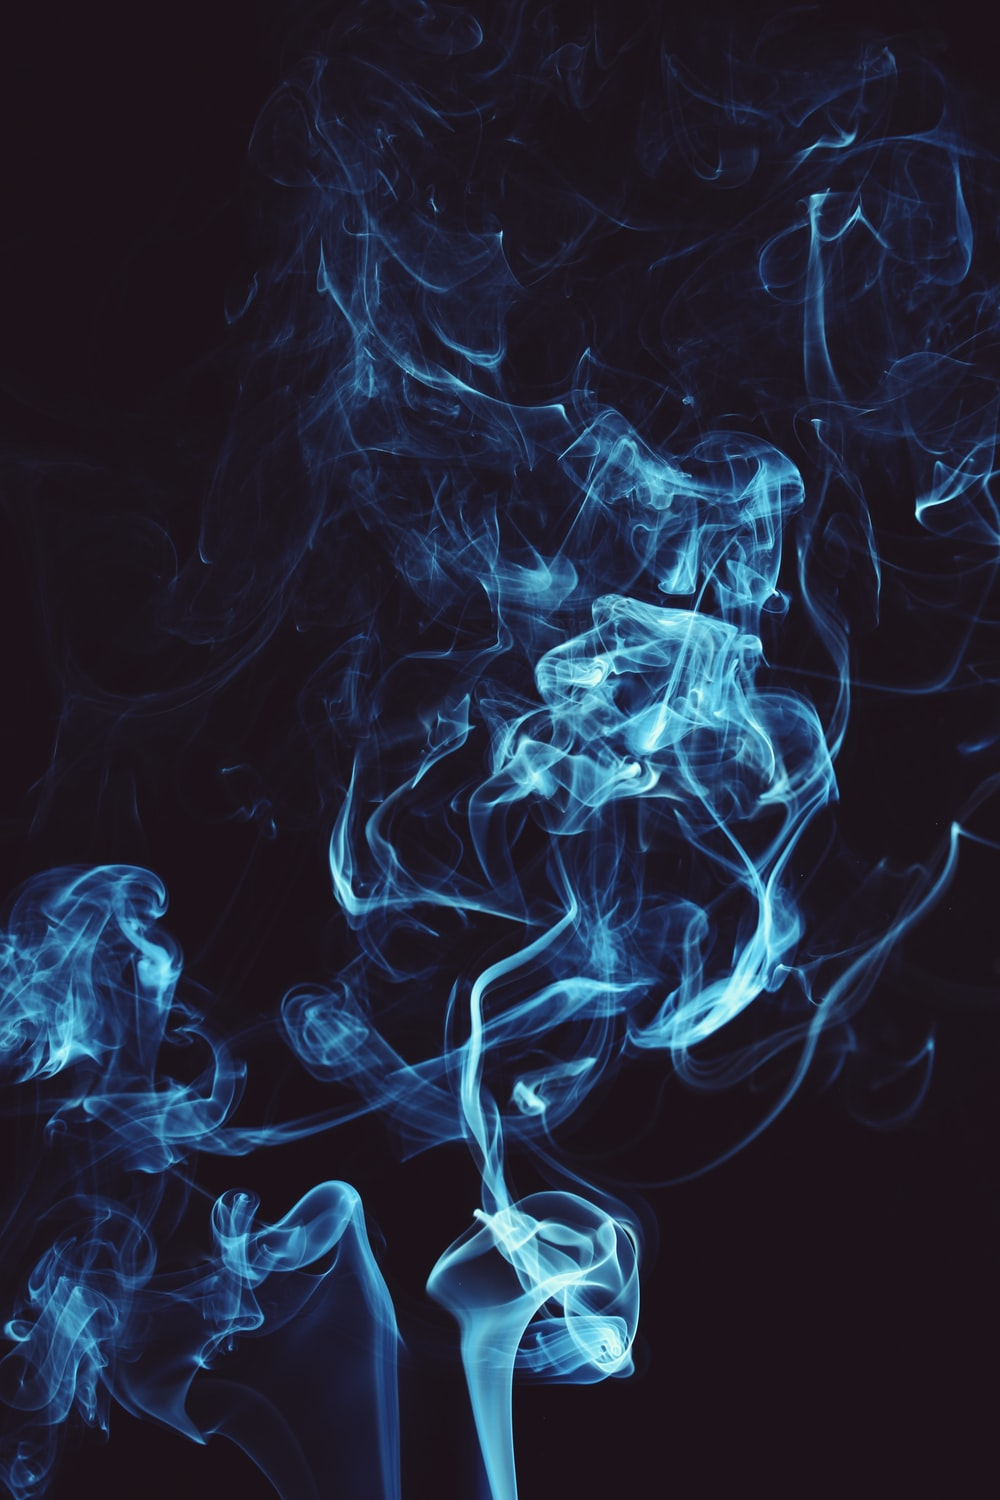 900 smoke background images download hd backgrounds on unsplash 900 smoke background images download